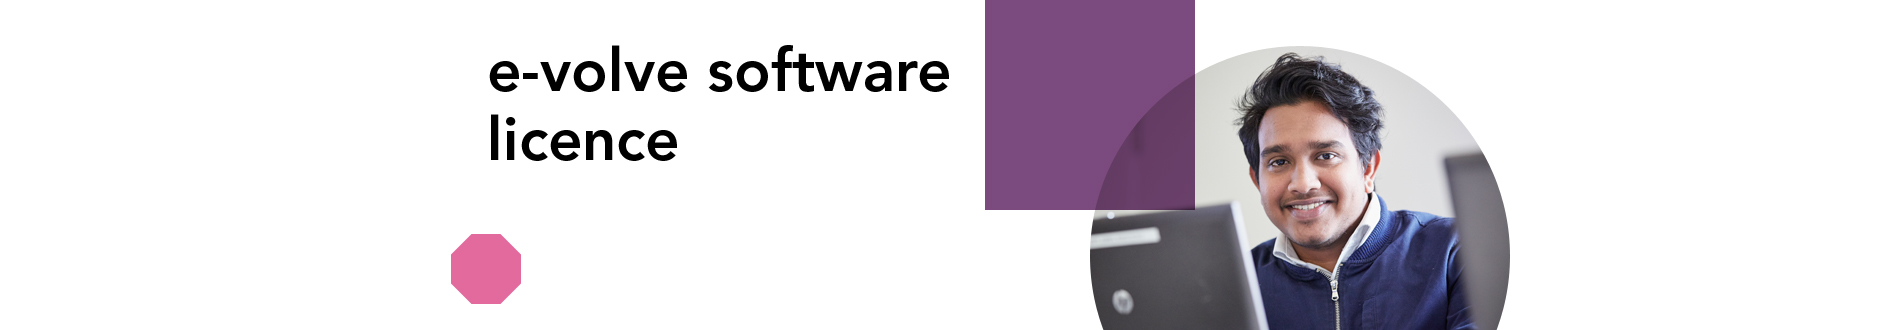 e-volve software license banner